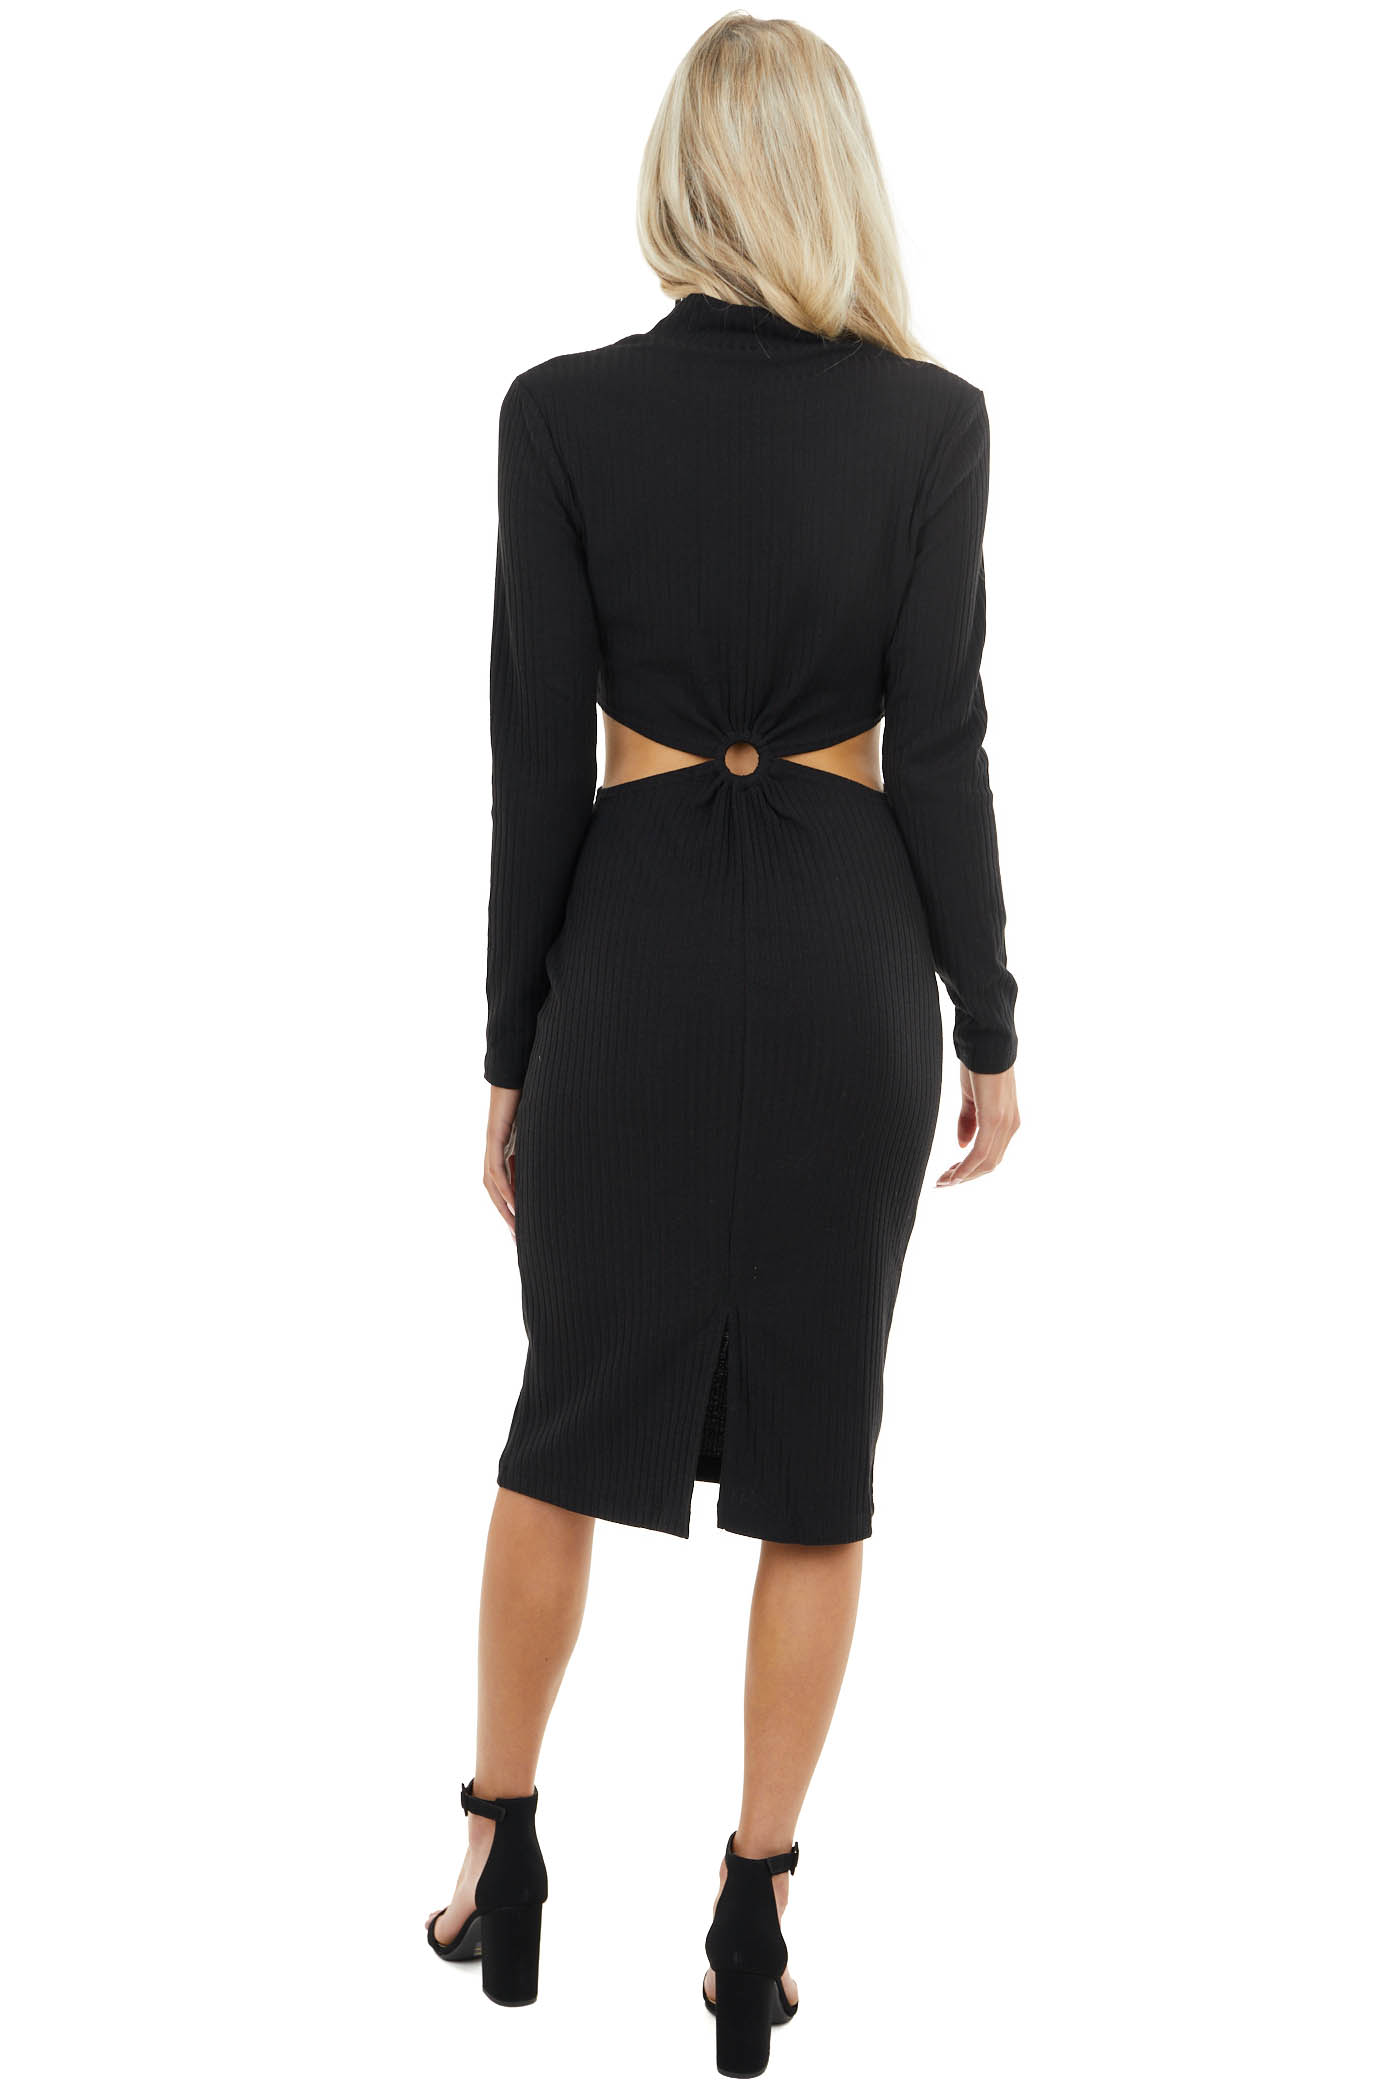 Black Bodycon Ribbed Knit Dress with Waist Cutout Detail